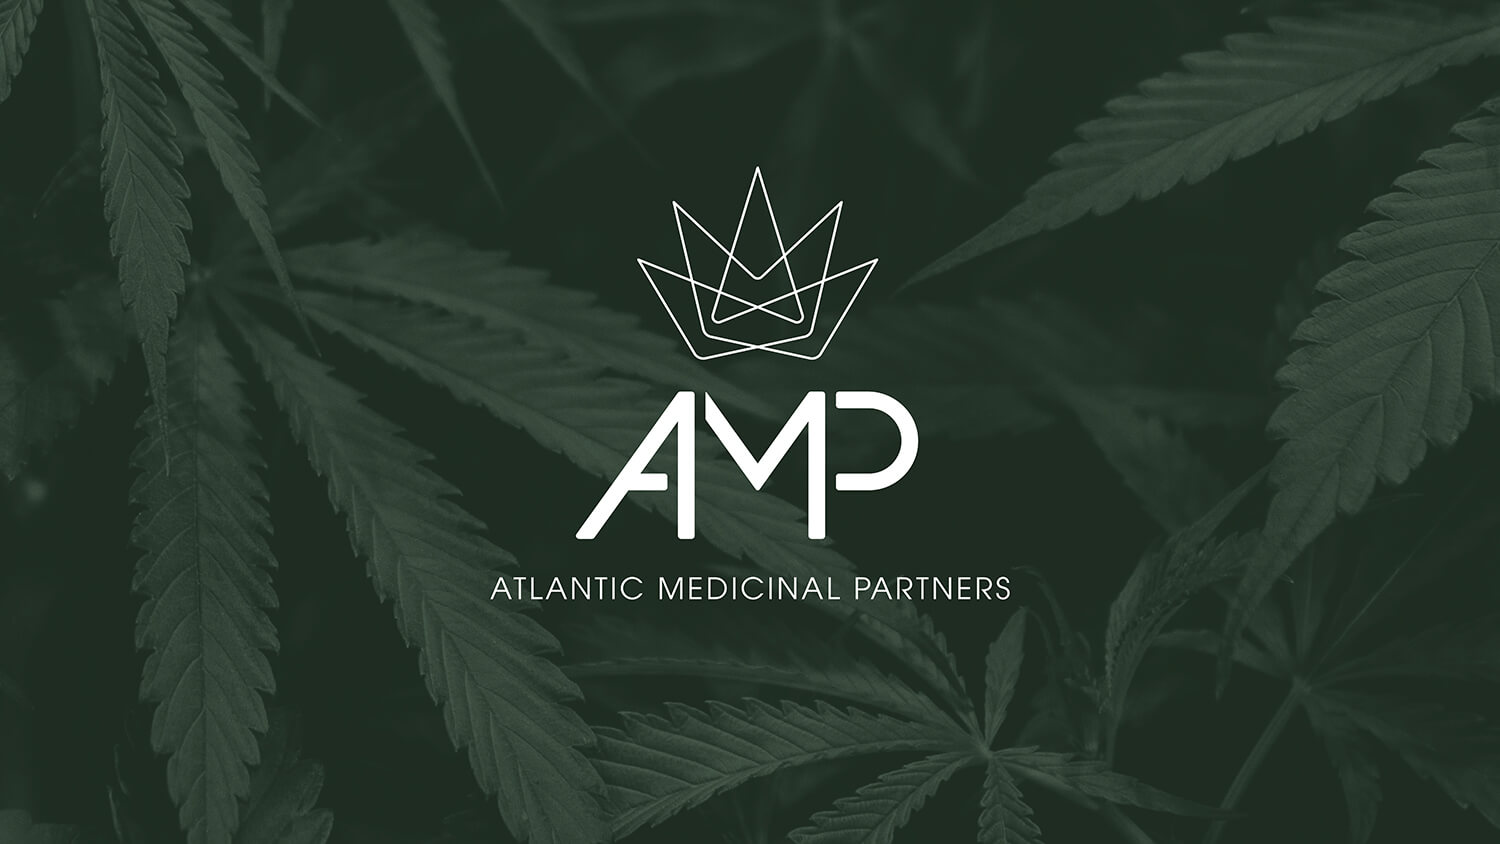 AMP Logo on green background with weed